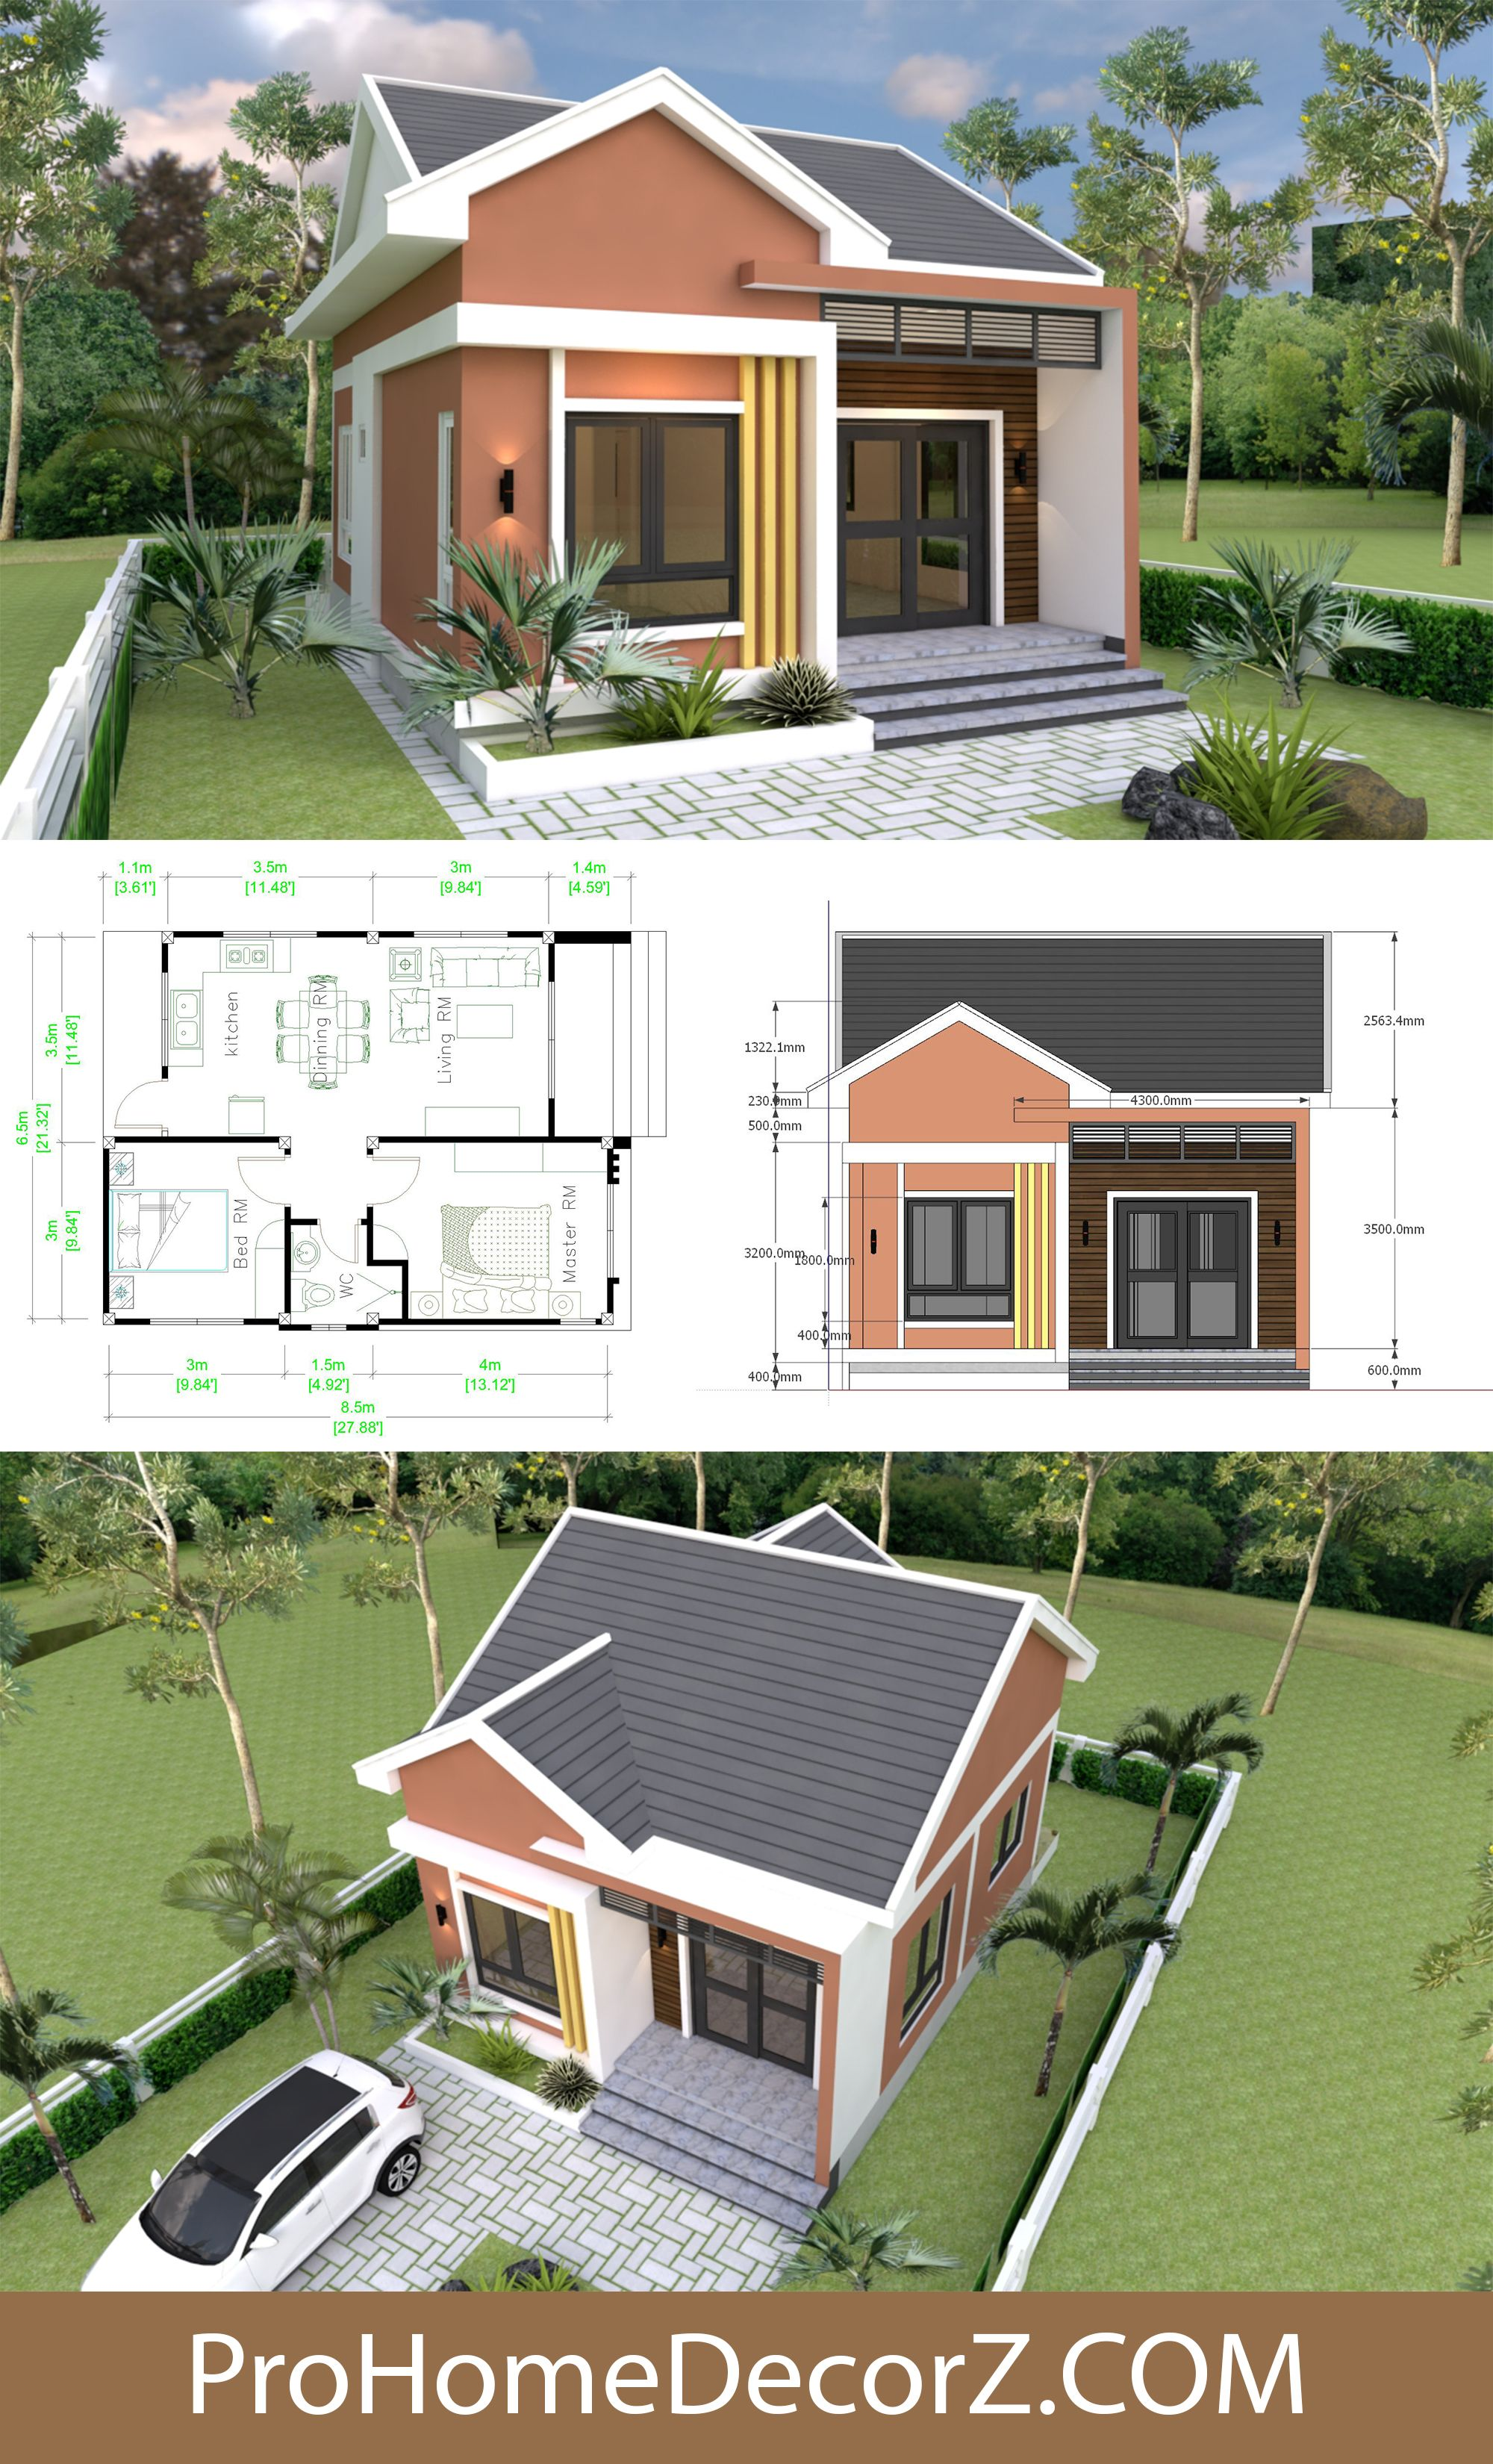 Small Bungalow 6 5x8 5 With Gable Roof 2 Bedrooms In 2020 Small Mansion Small Bungalow Model House Plan